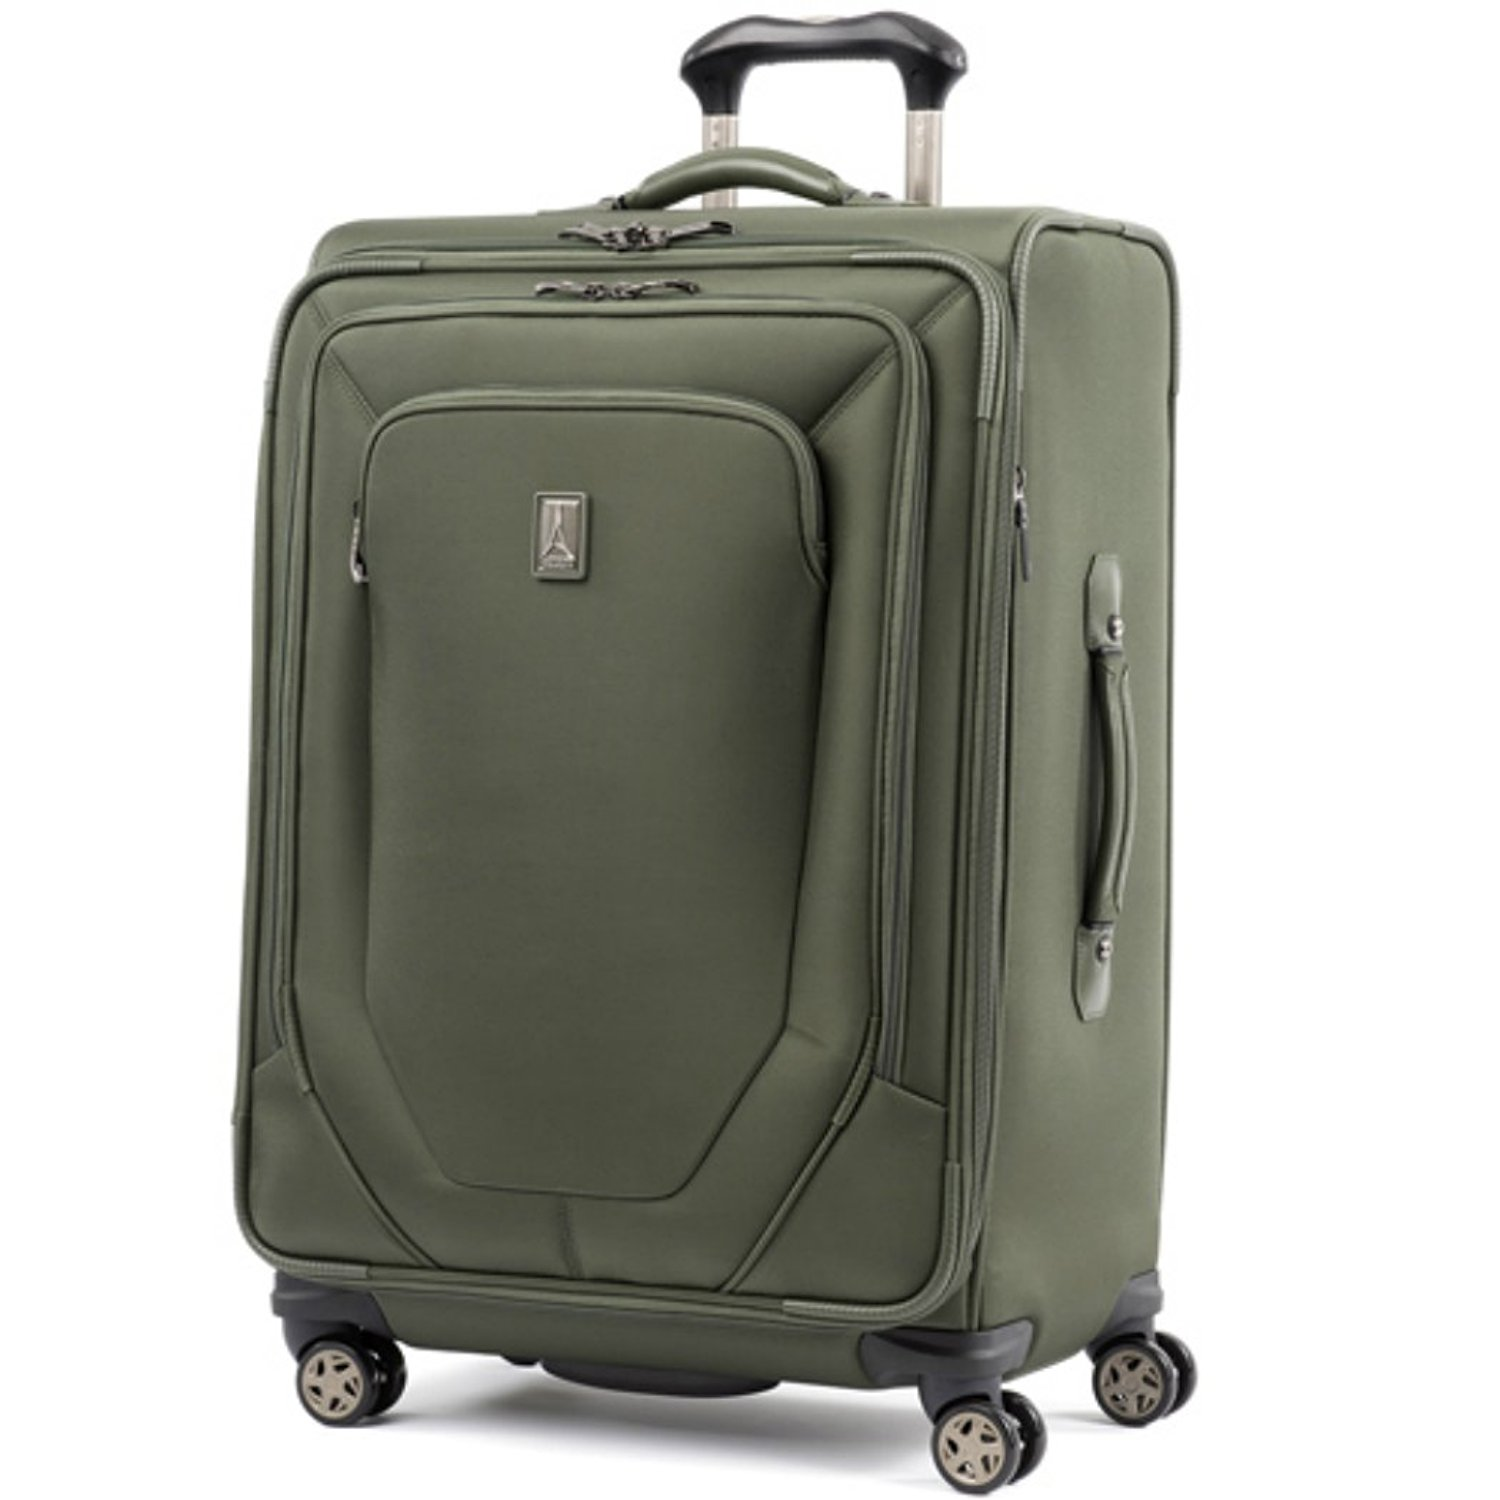 9a02c32332bf Cheap Travelpro Spinner Luggage, find Travelpro Spinner Luggage ...